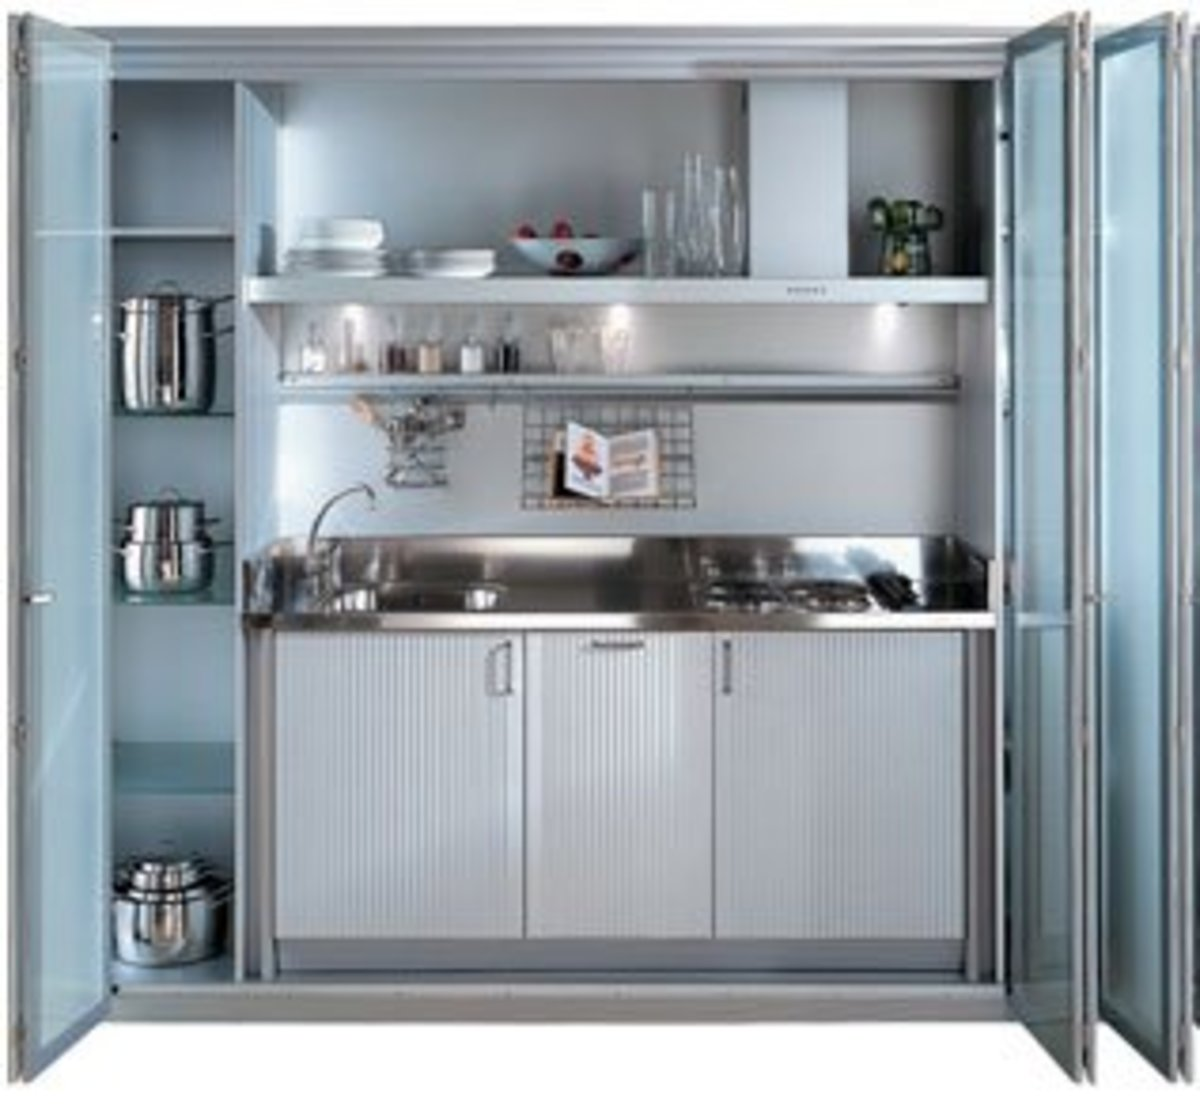 Find small kitchen ideas from places like Ikea